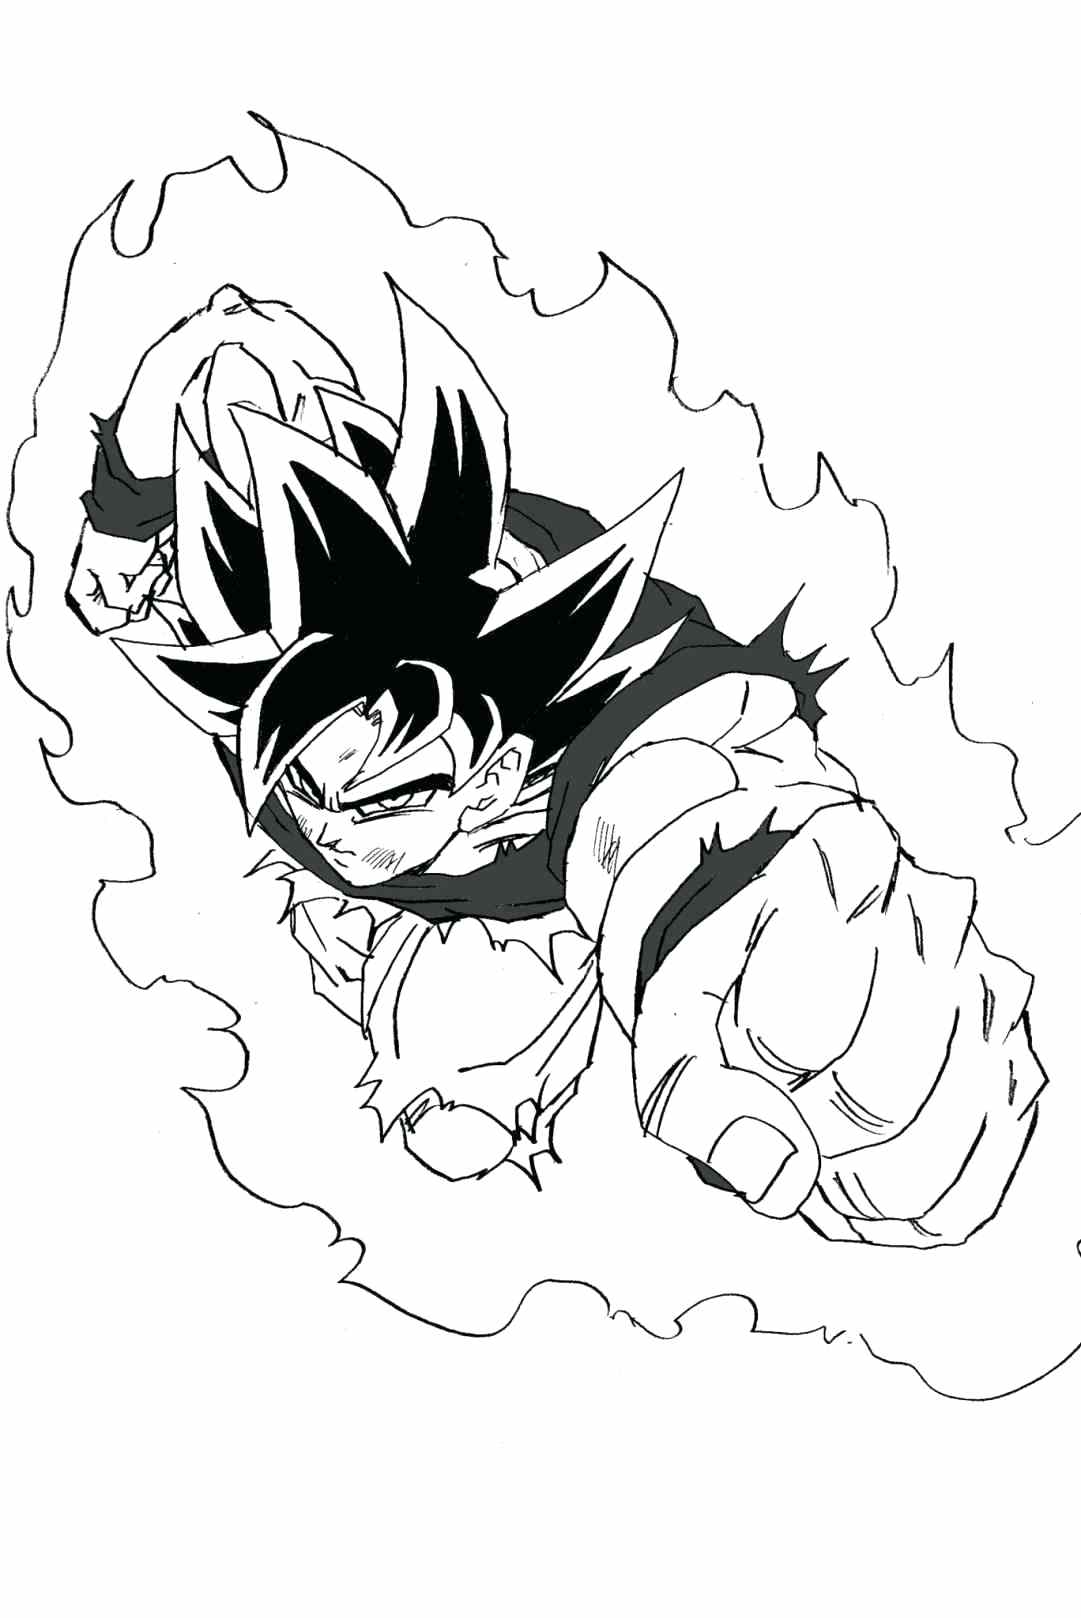 1081x1618 Coloring Coloring Pages Of Dragon Ball Z Characters Pin Drawings